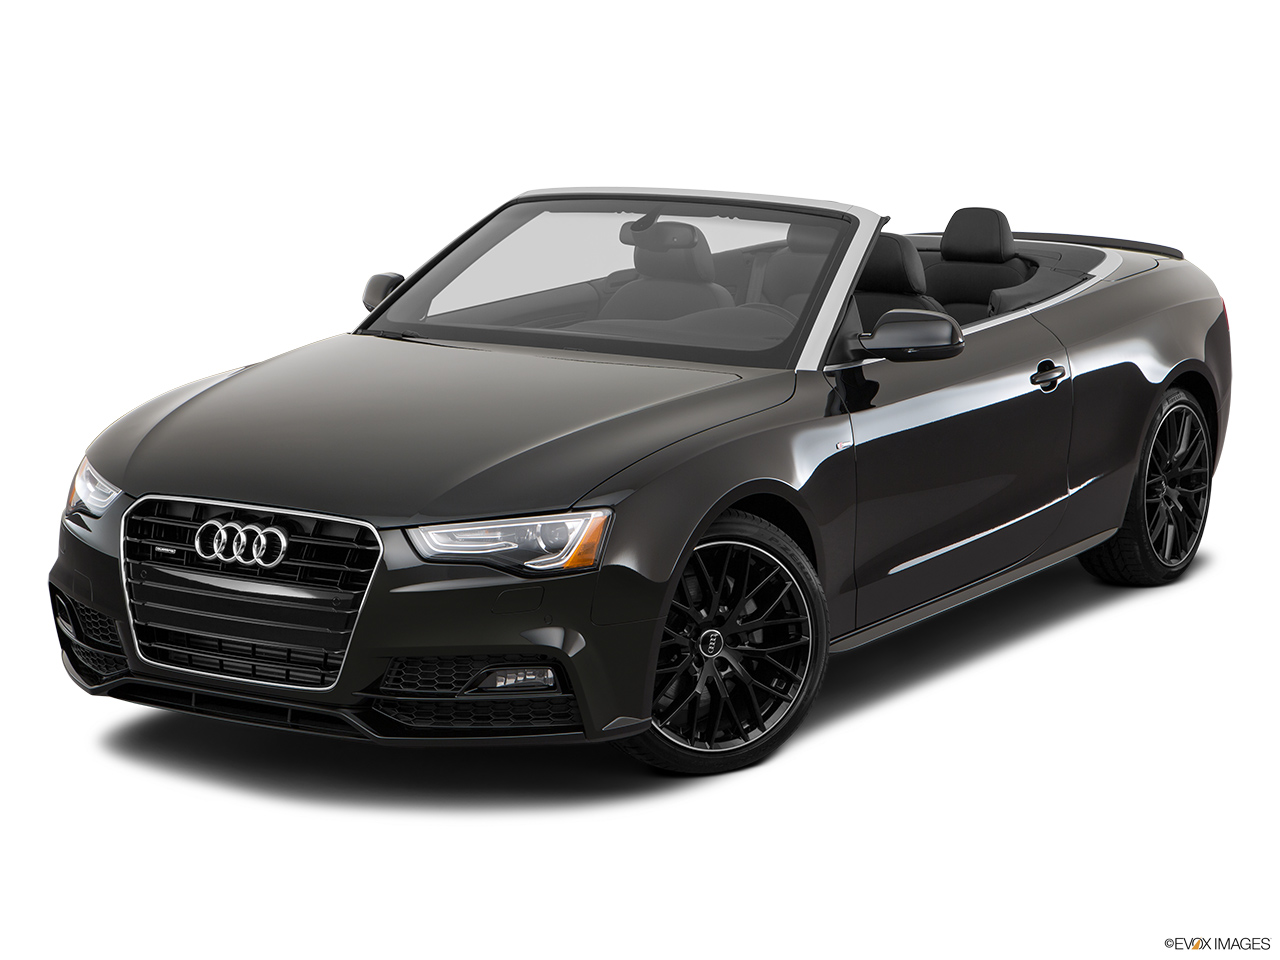 audi a5 cabriolet 2017 45 tfsi design quattro 252 hp in qatar new car prices specs reviews. Black Bedroom Furniture Sets. Home Design Ideas